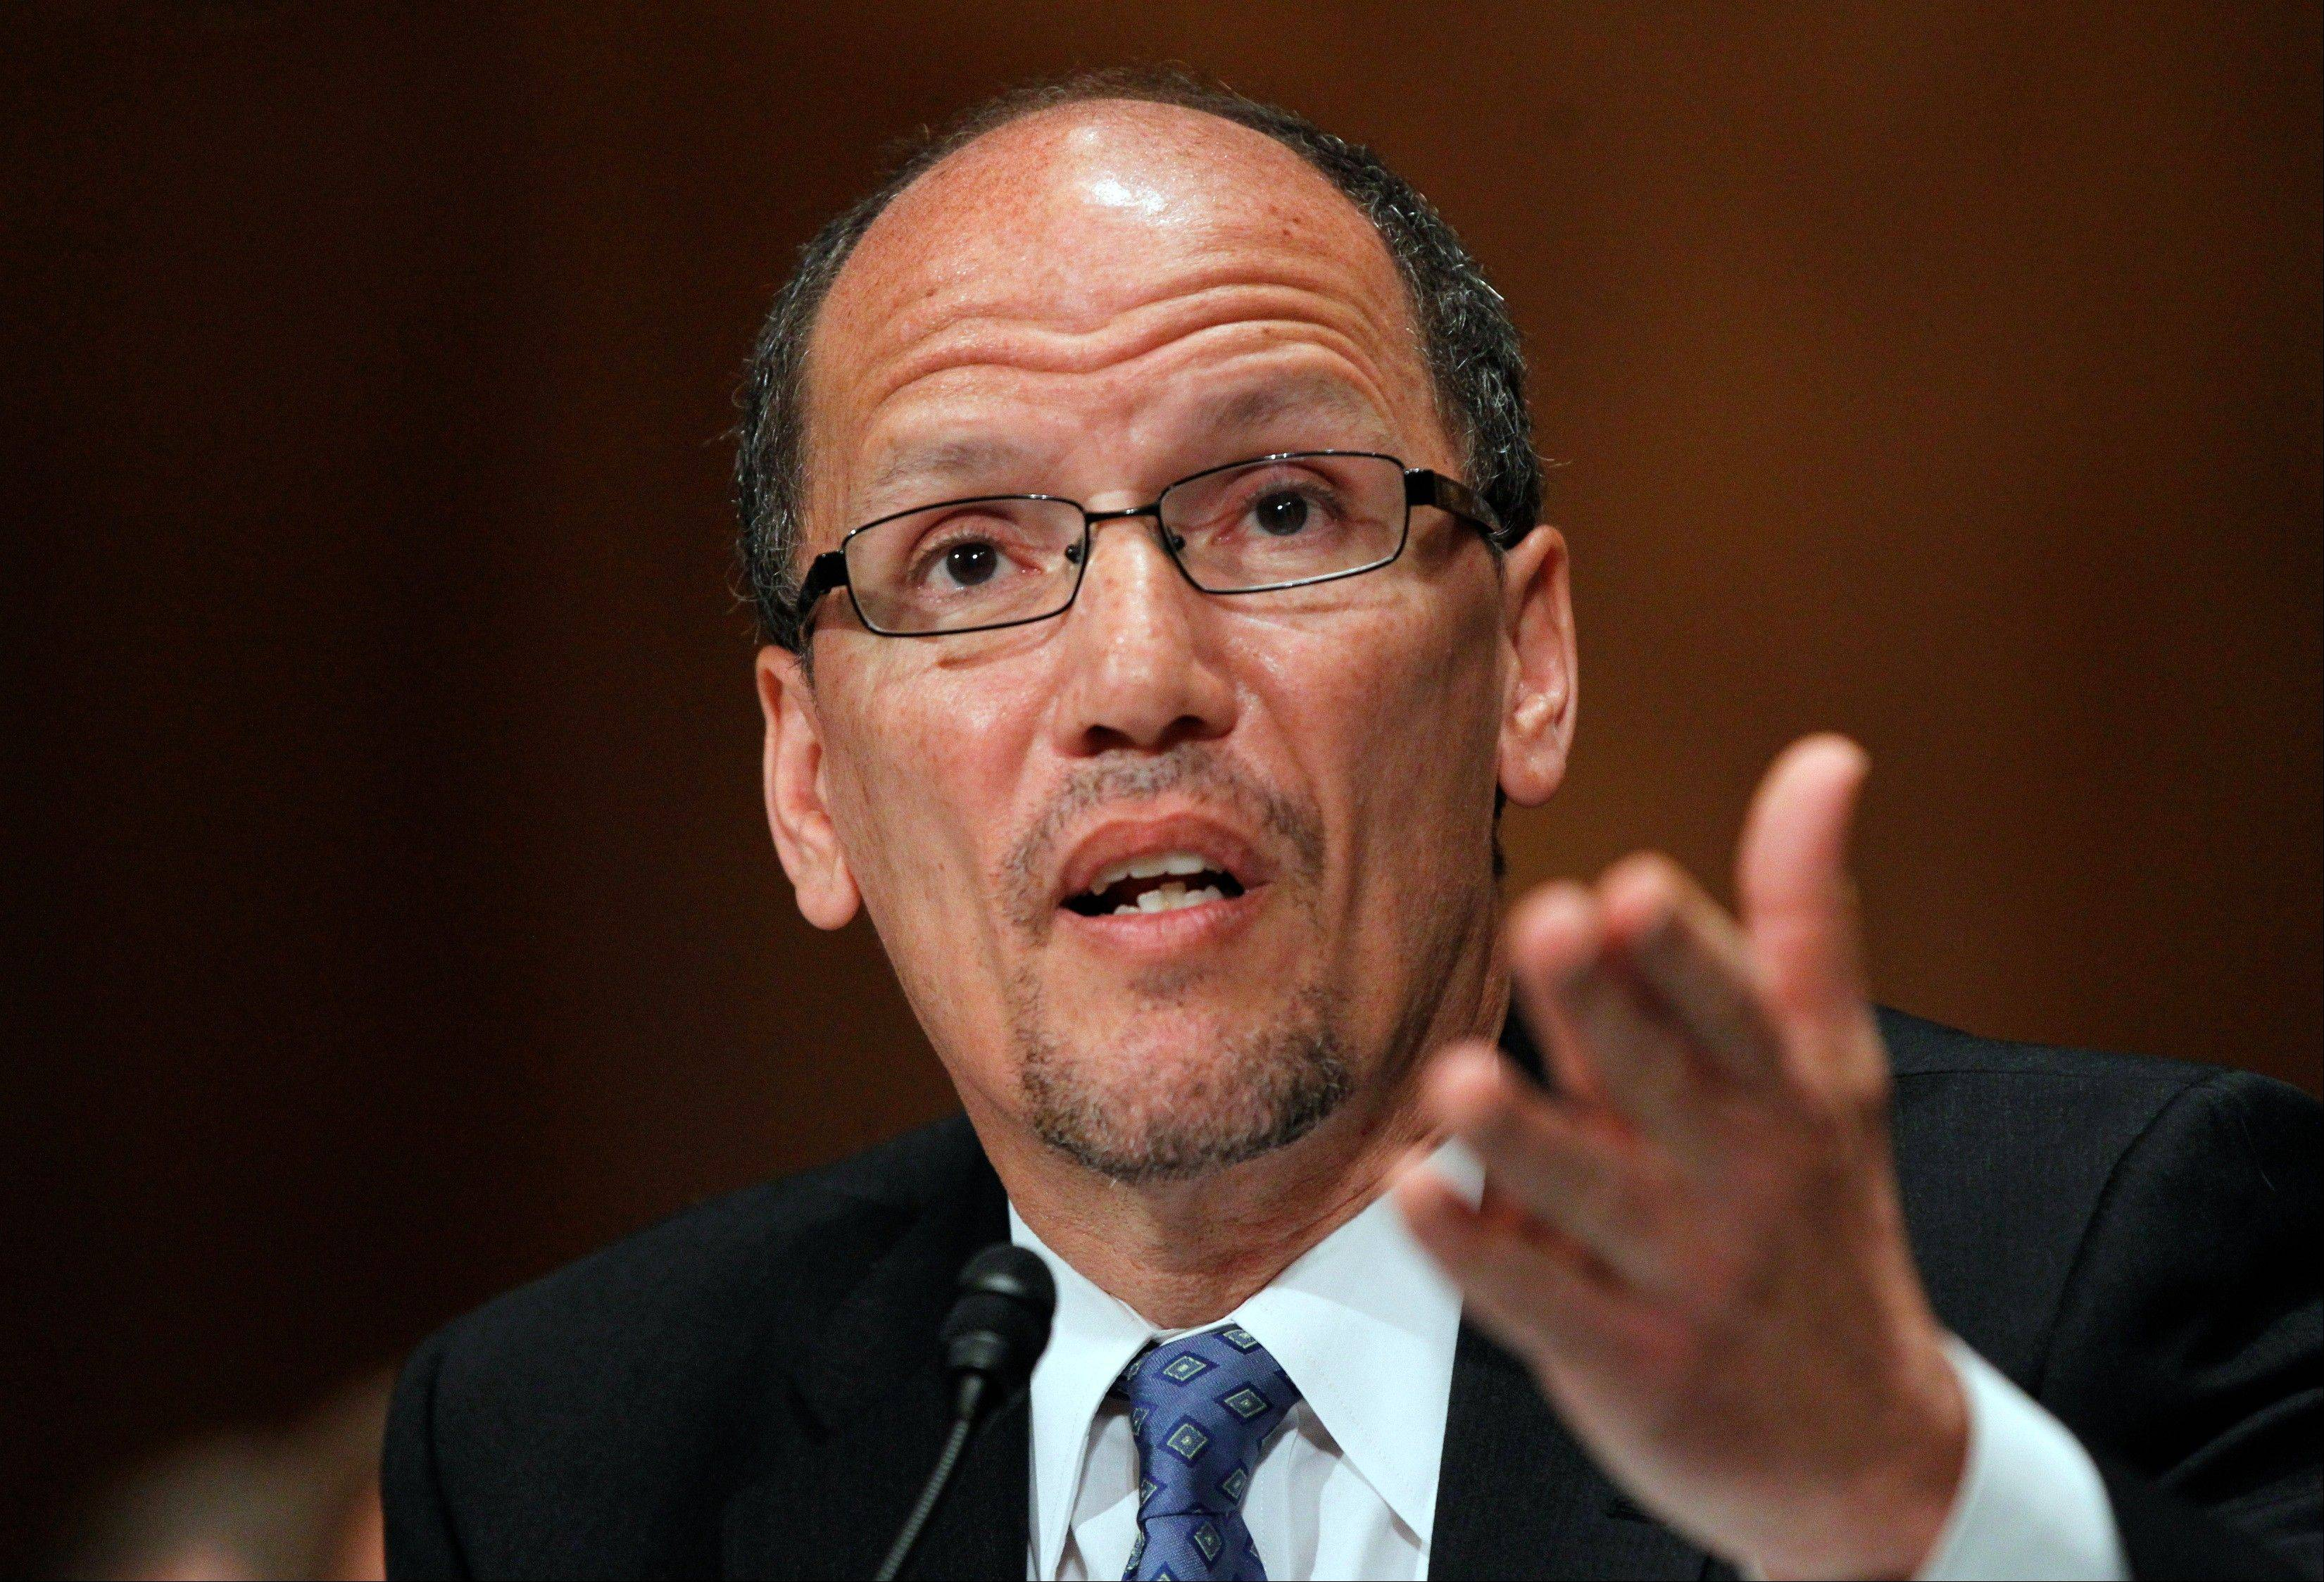 Labor Secretary Thomas Perez called the new policy requiring most government contractors to hire veterans and disabled workers a �win-win� that will benefit workers �who belong in the economic mainstream and deserve a chance to work and opportunity to succeed.�